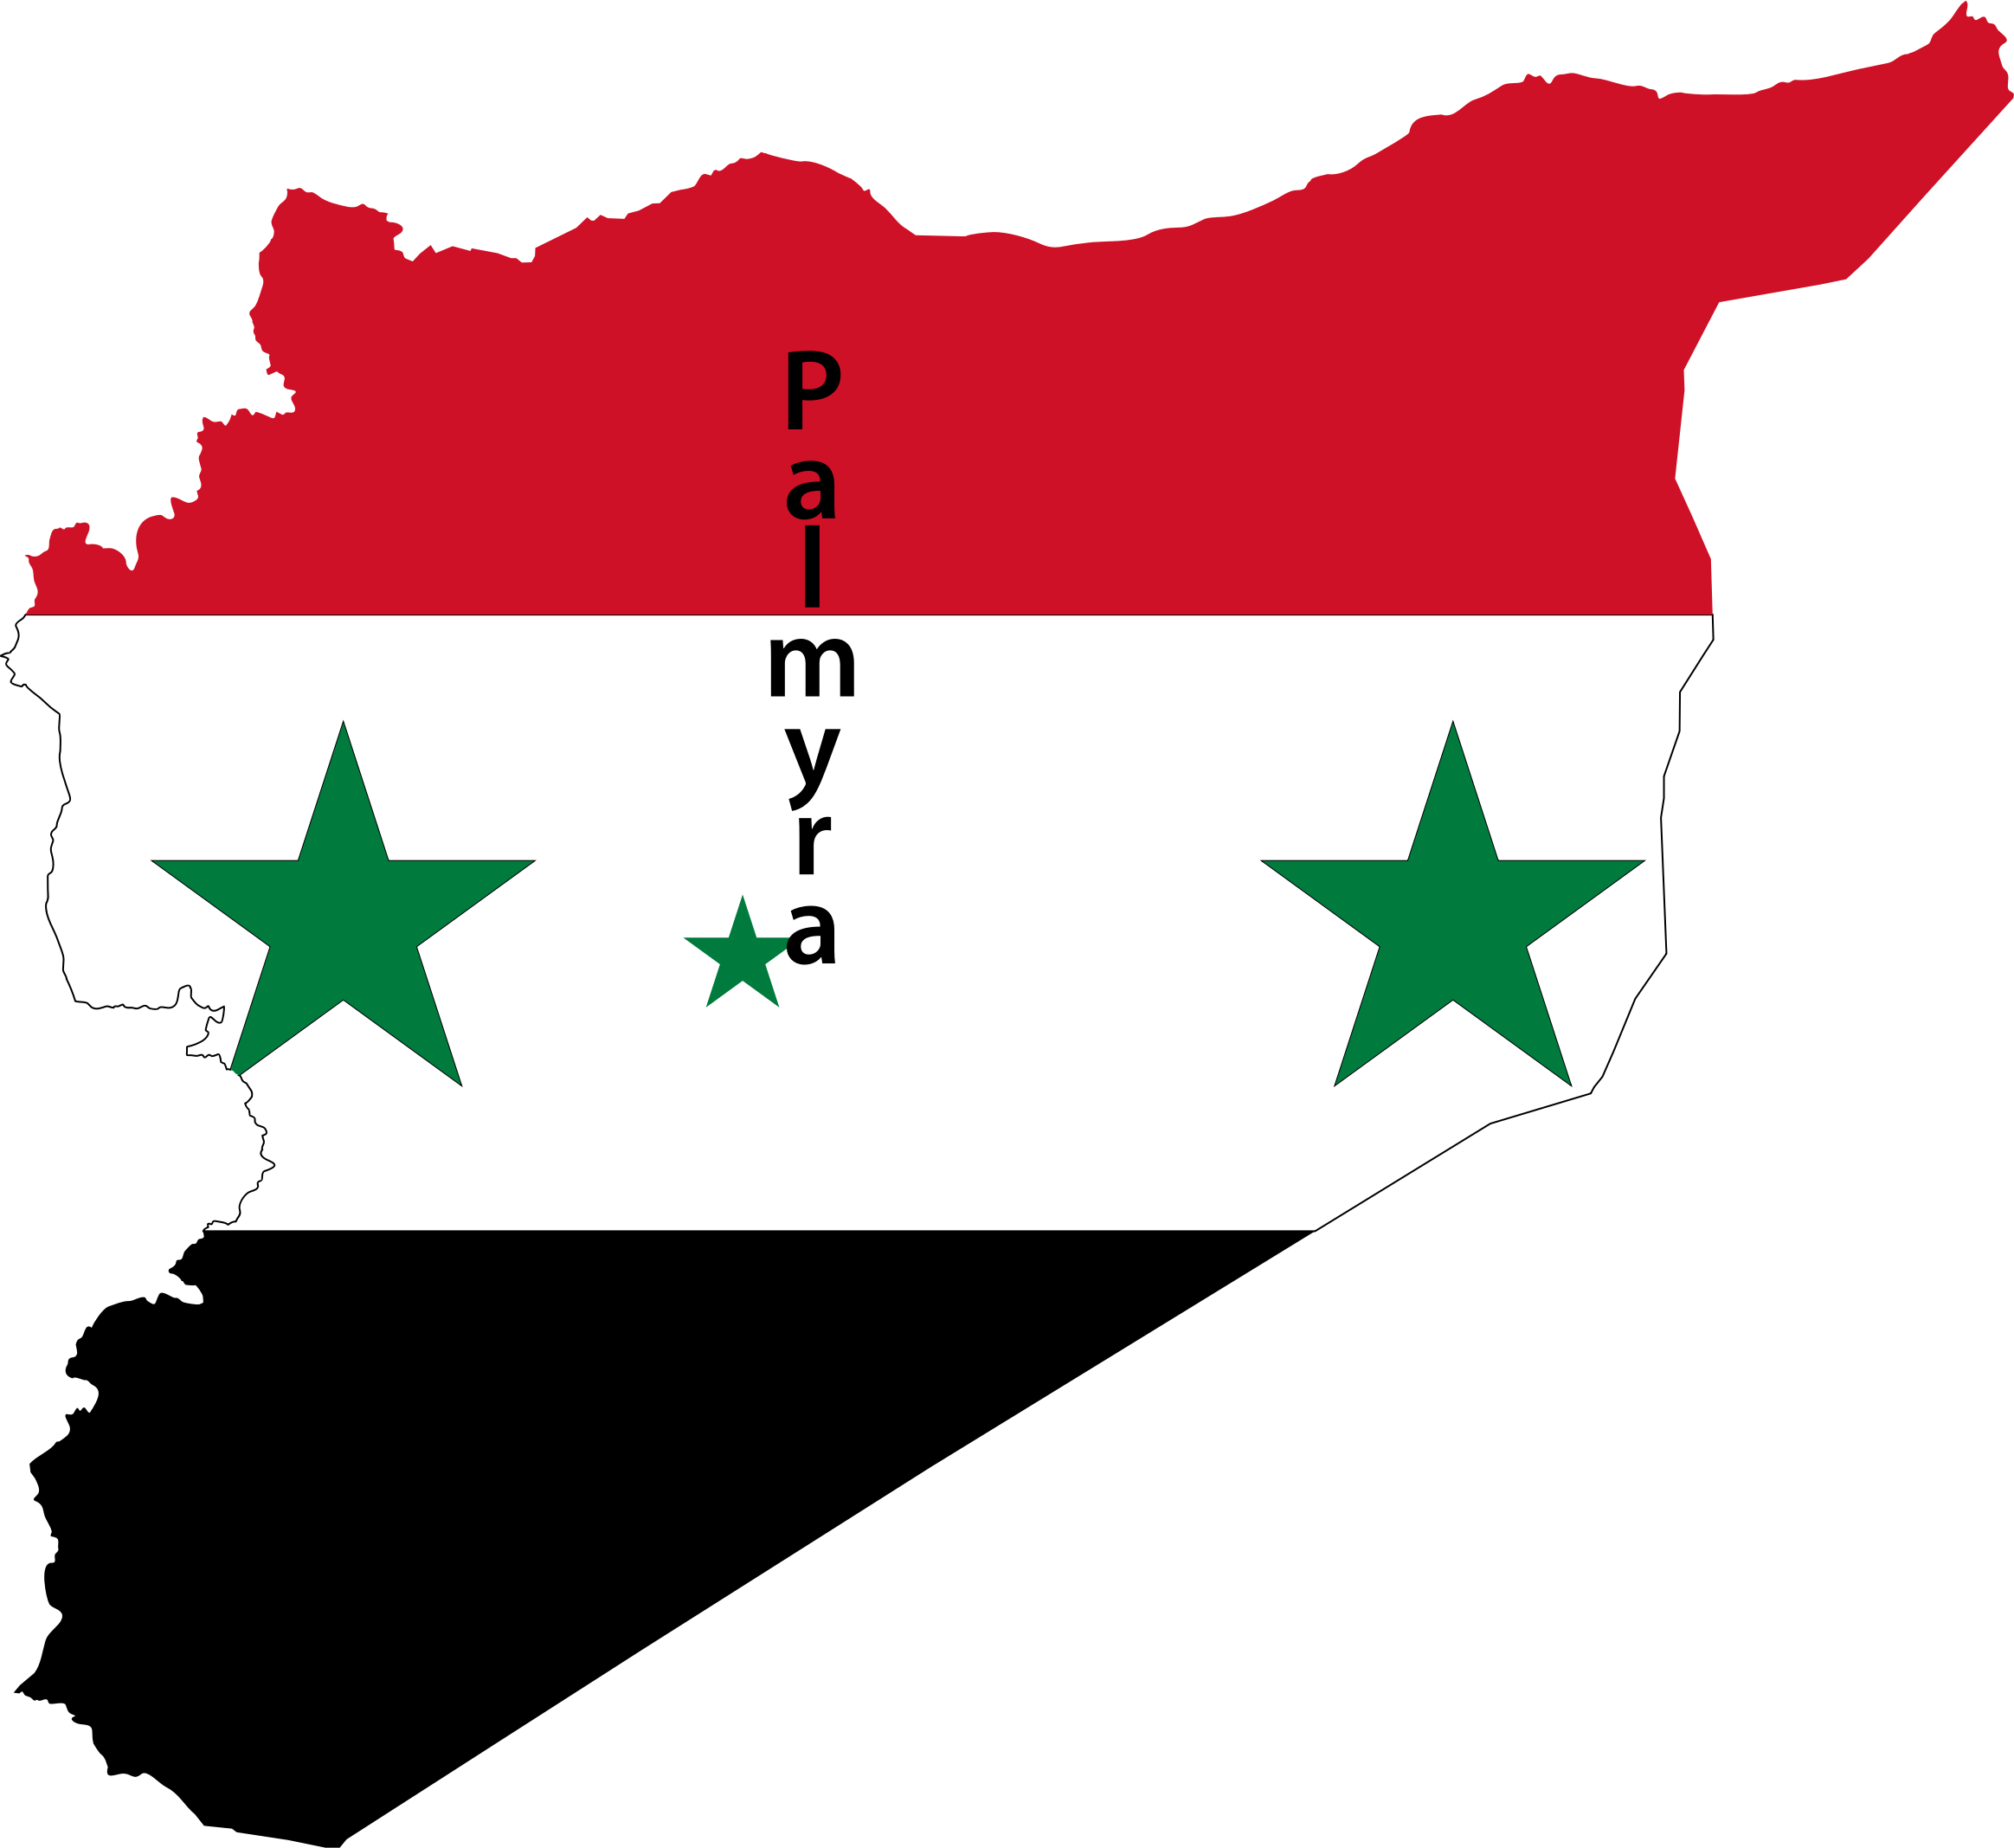 Government clipart president. Syria map flag with